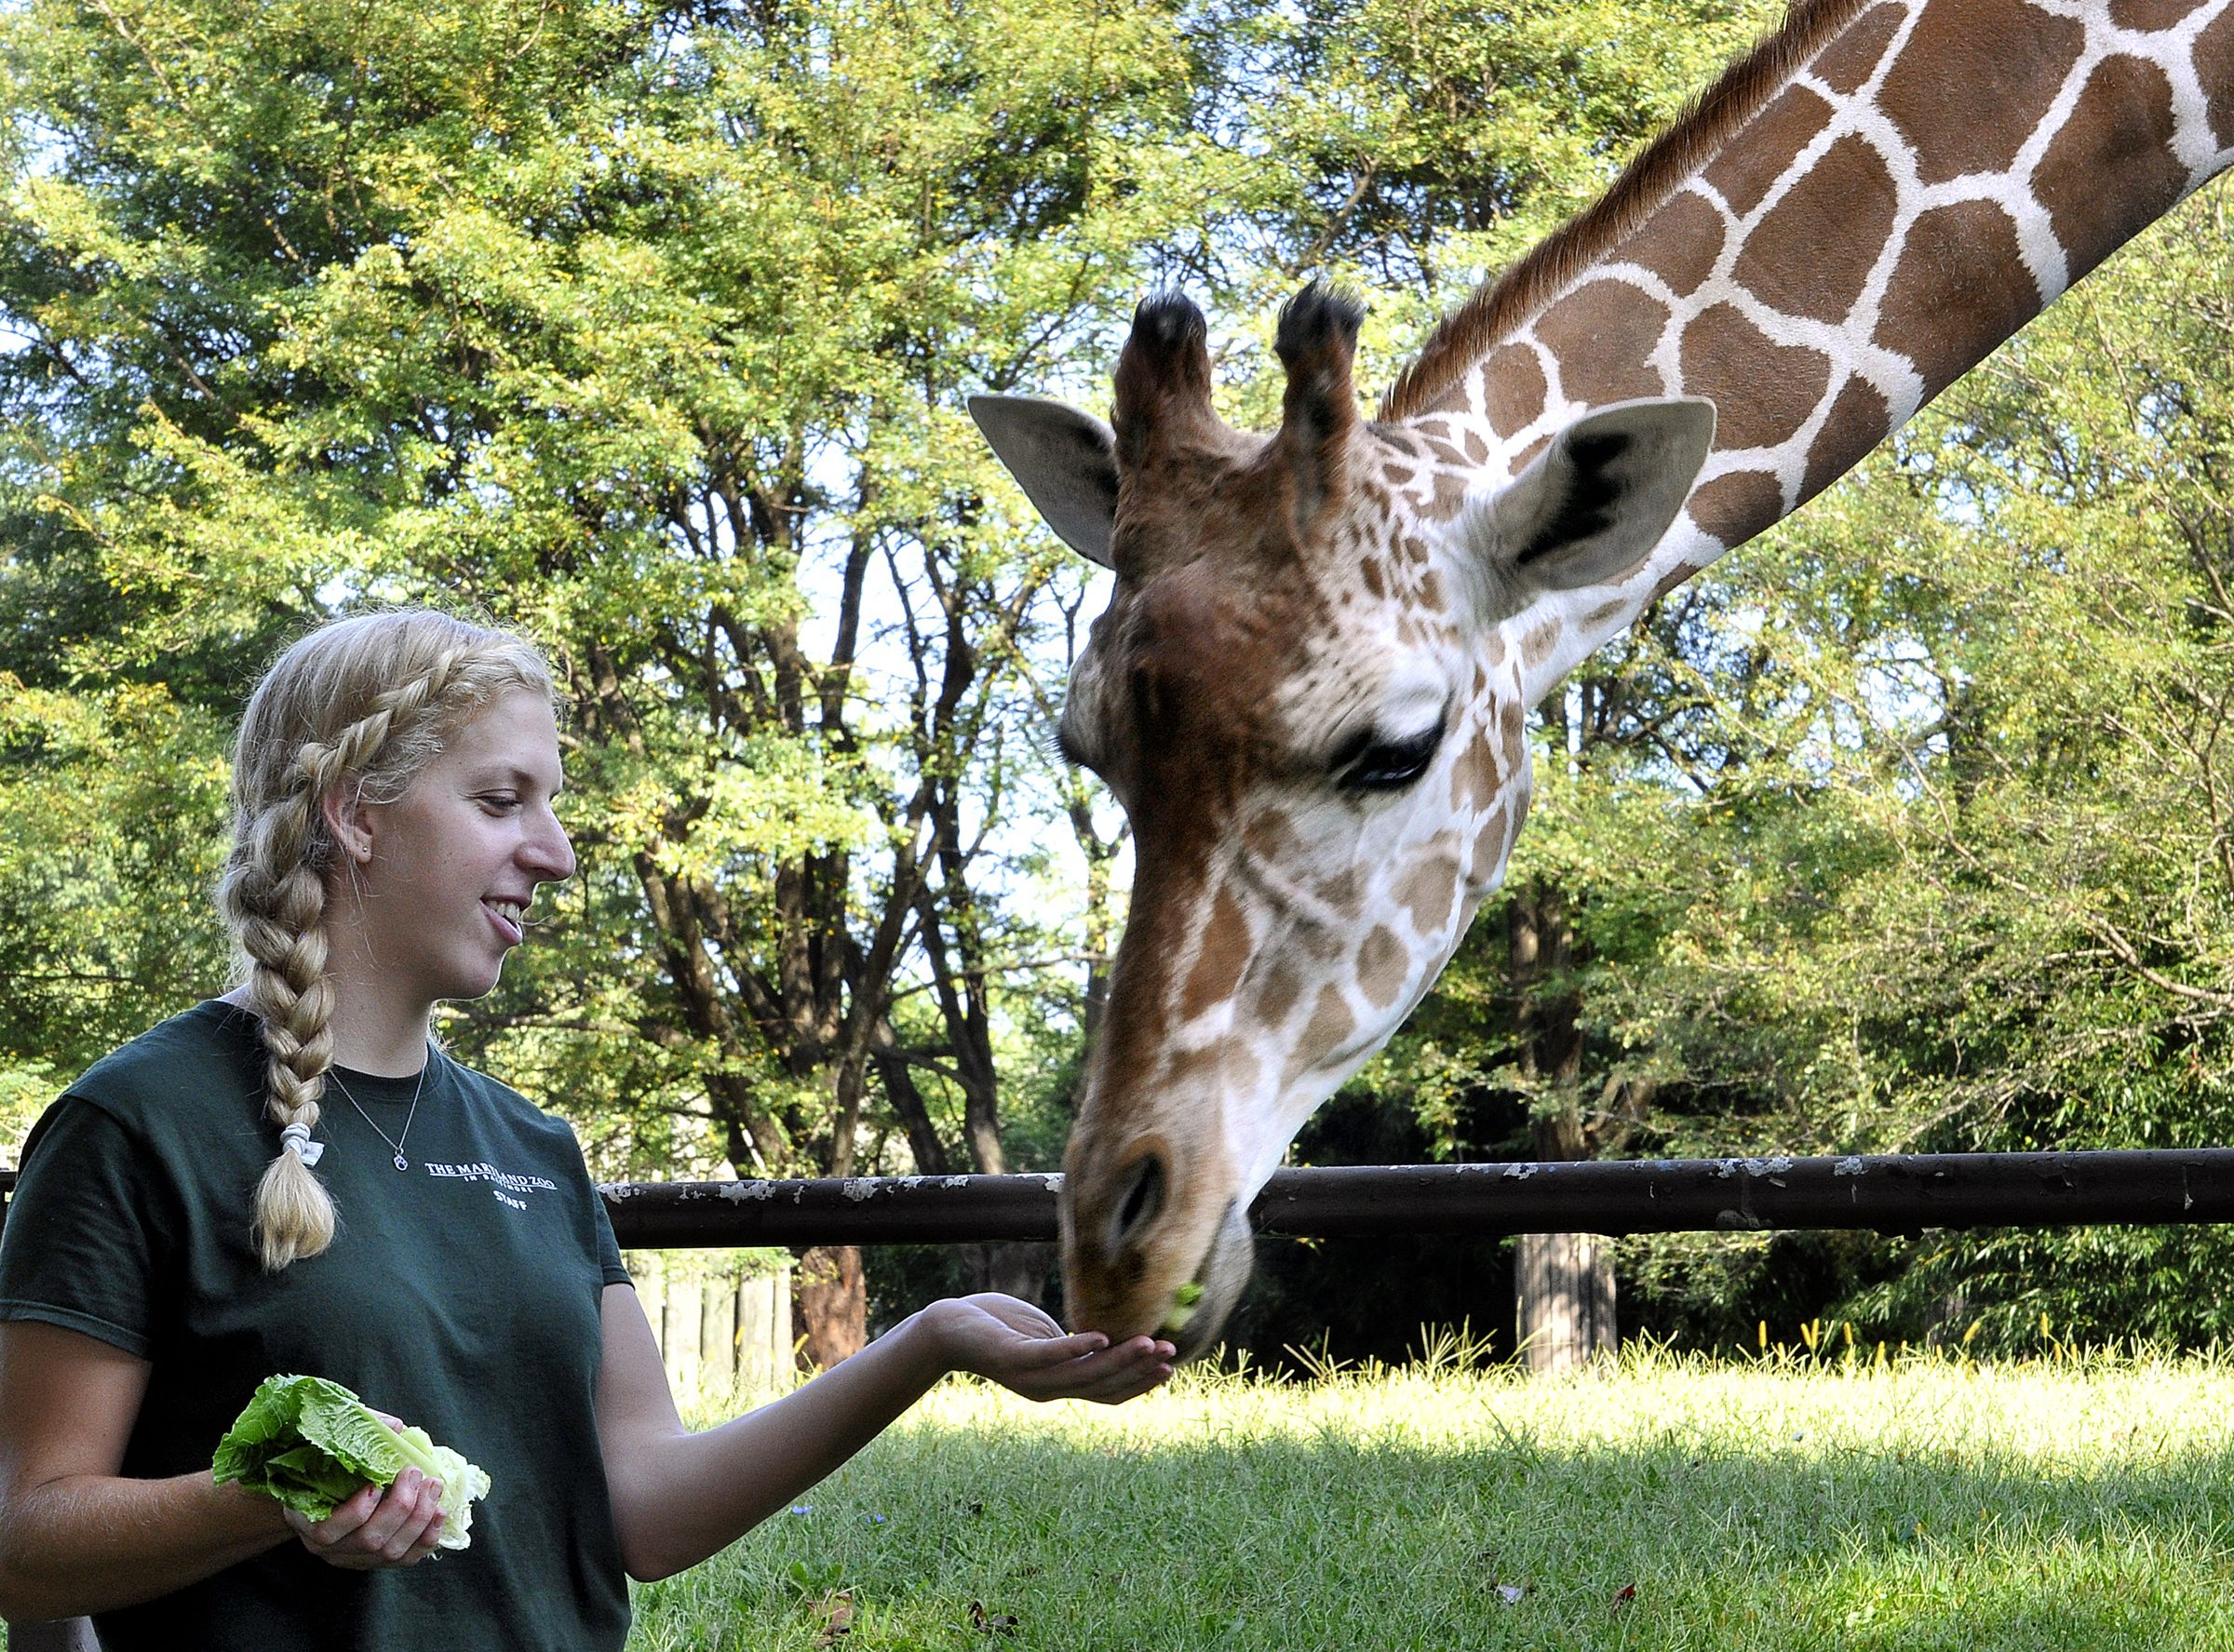 Get That Life How I Became A Zookeeper - 20 hilarious photos of what zookeepers get up to after closing hours